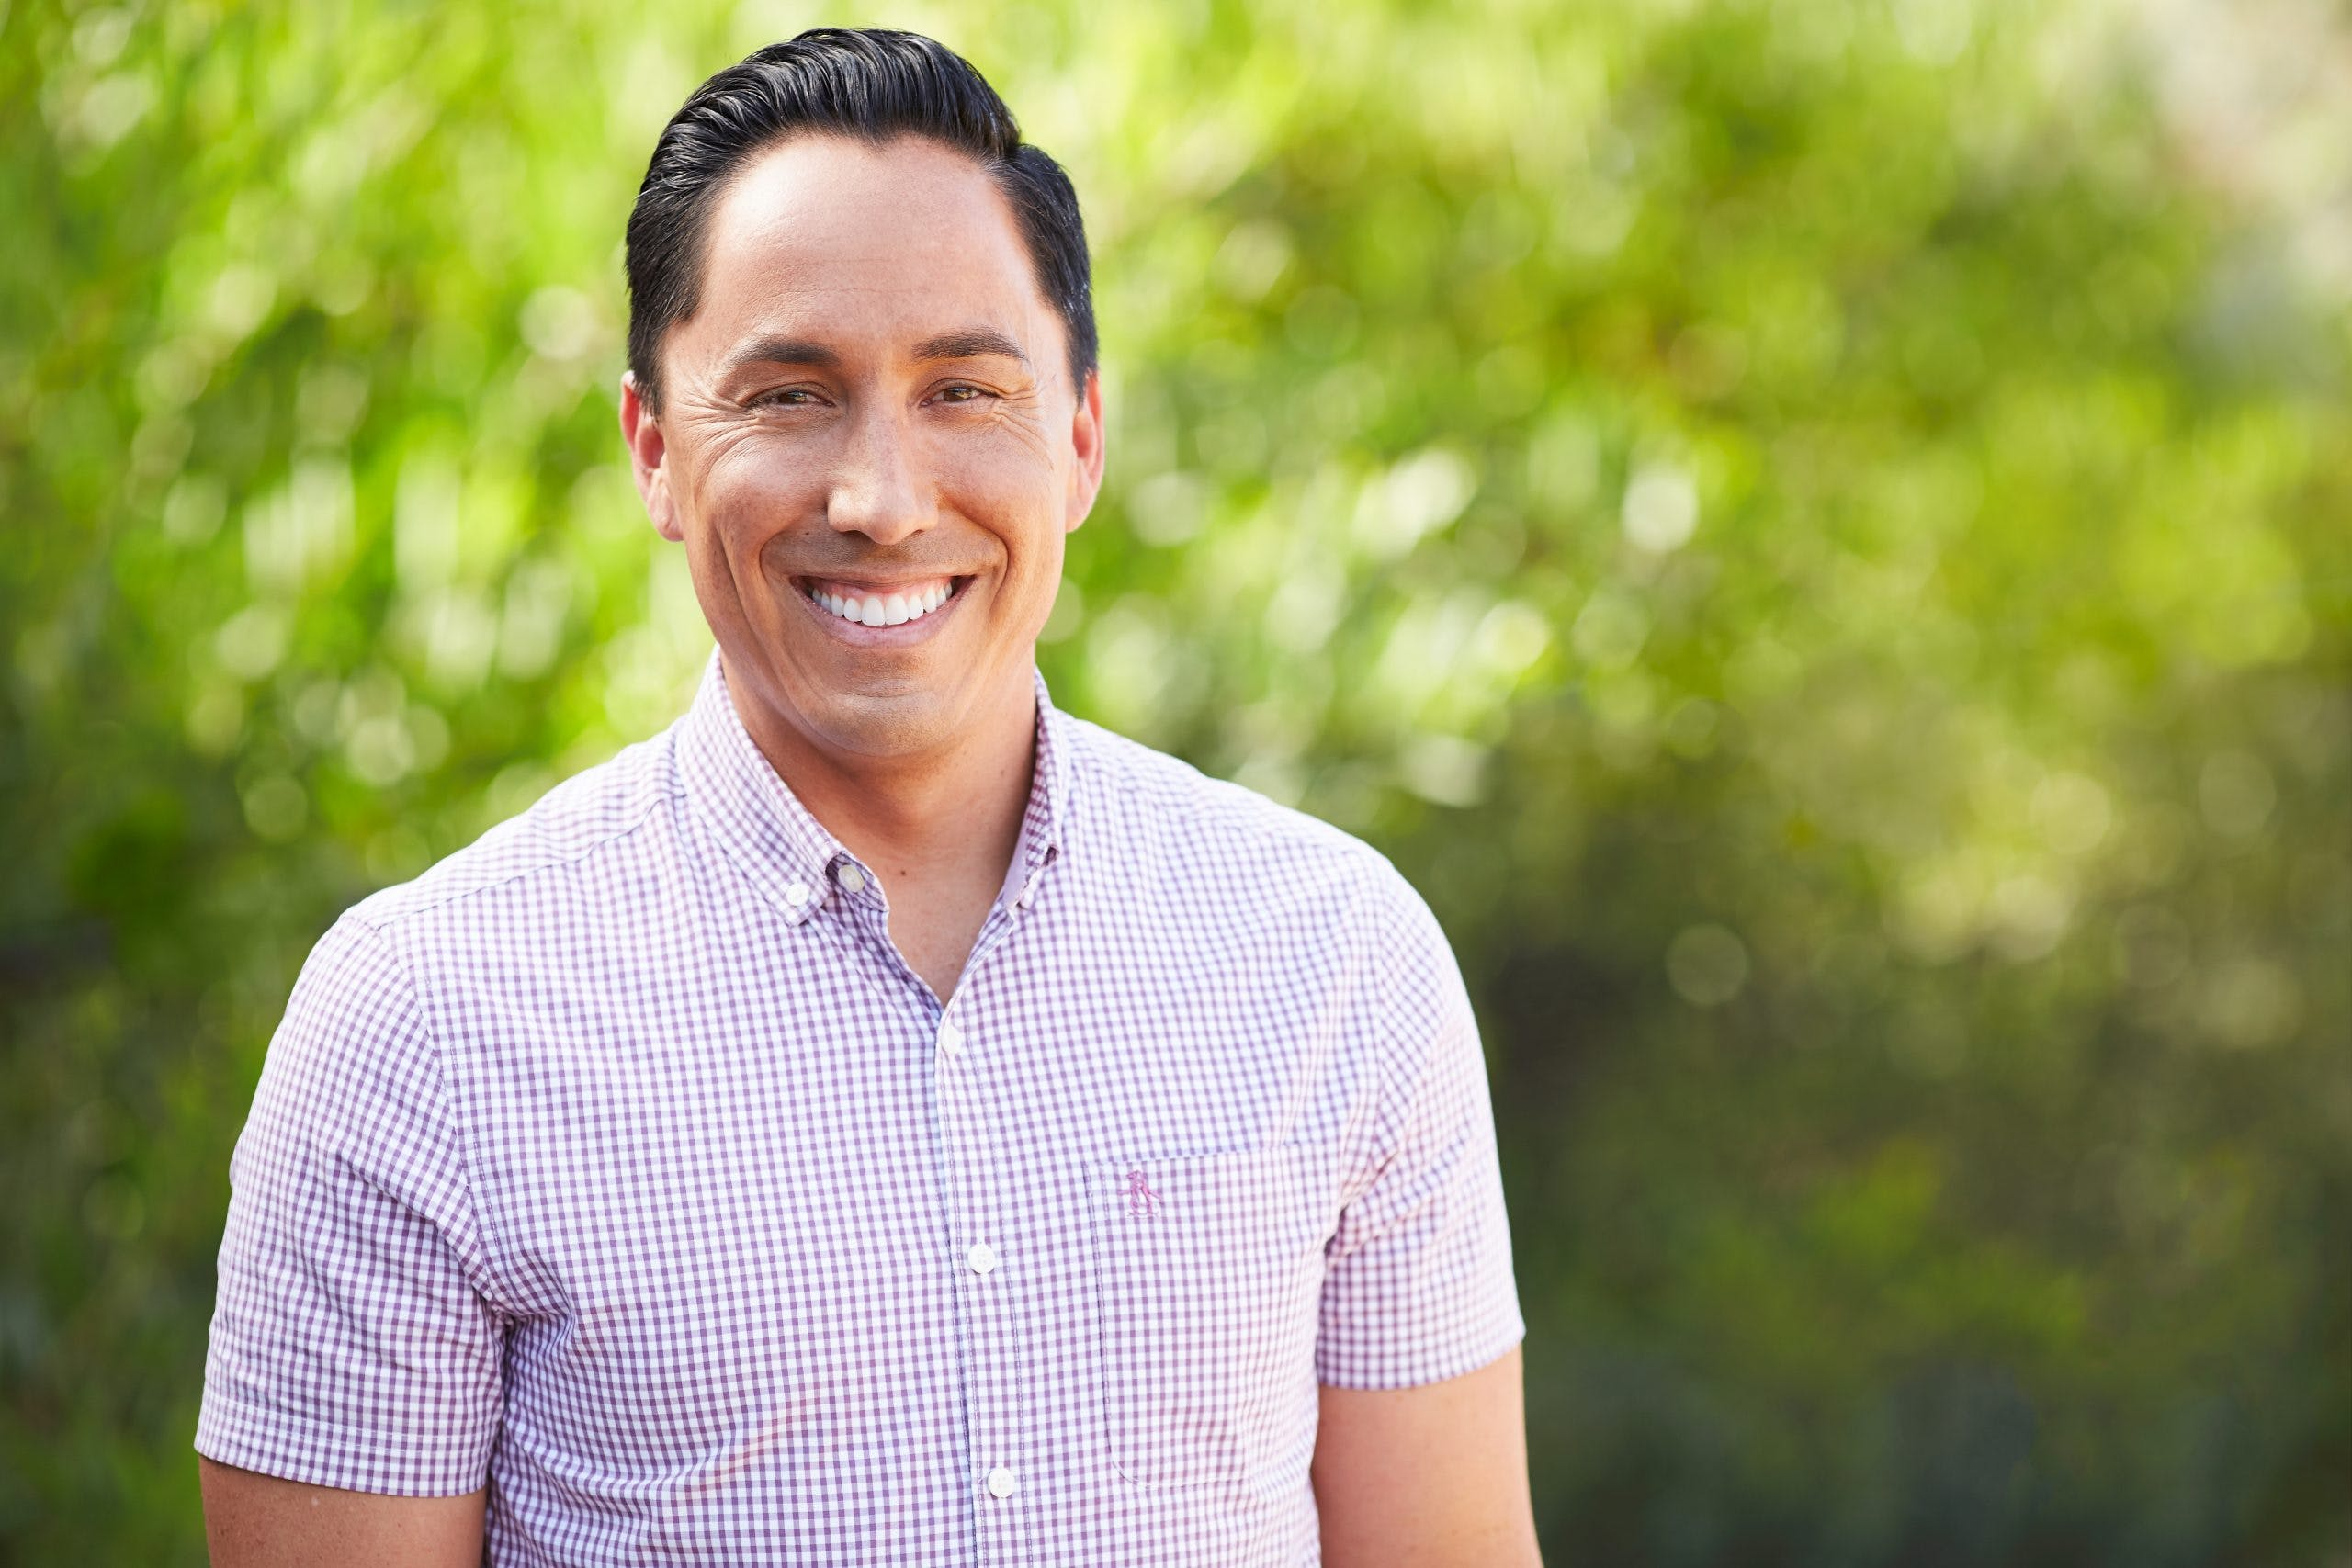 Todd Gloria wants to be the first LGBTQ person elected mayor of San Diego